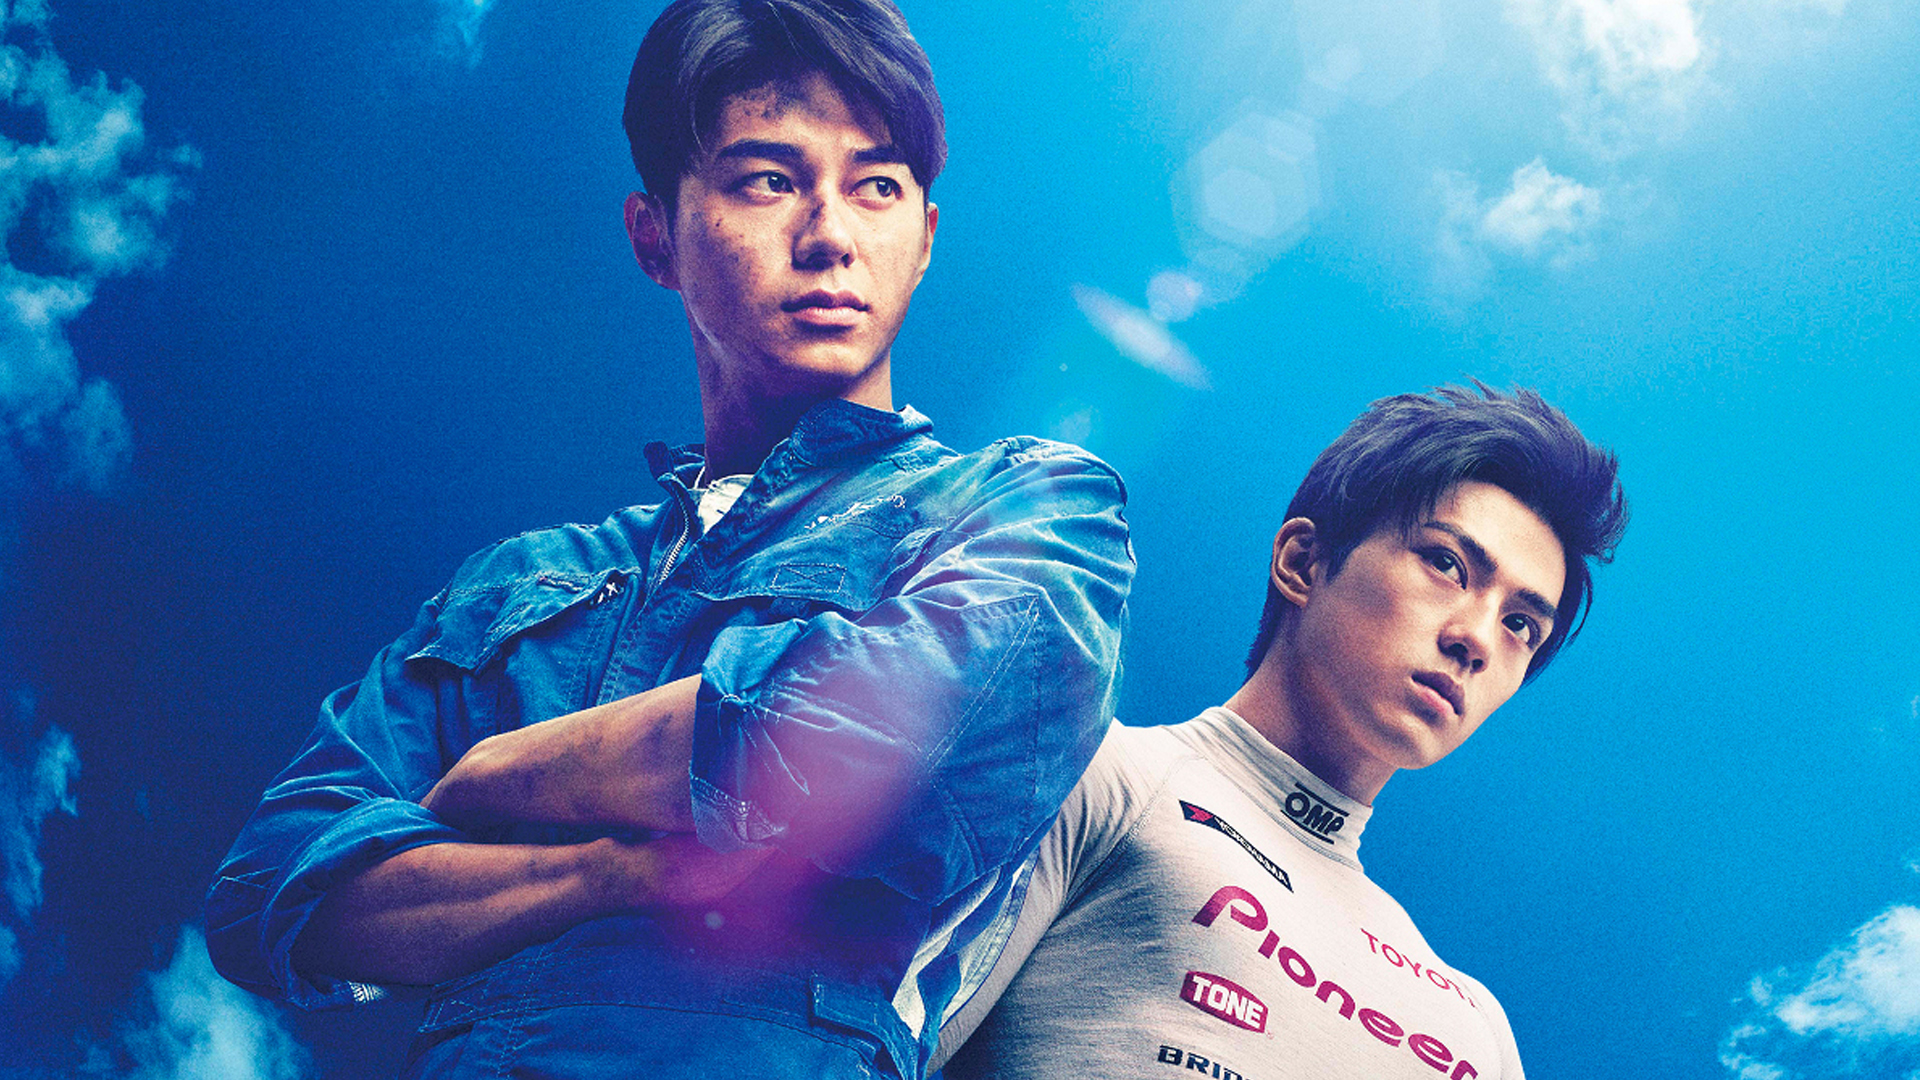 Good Ol' Review: Racing Thrills, Strong Cast Not Enough to Get Over Drive Into Full Throttle